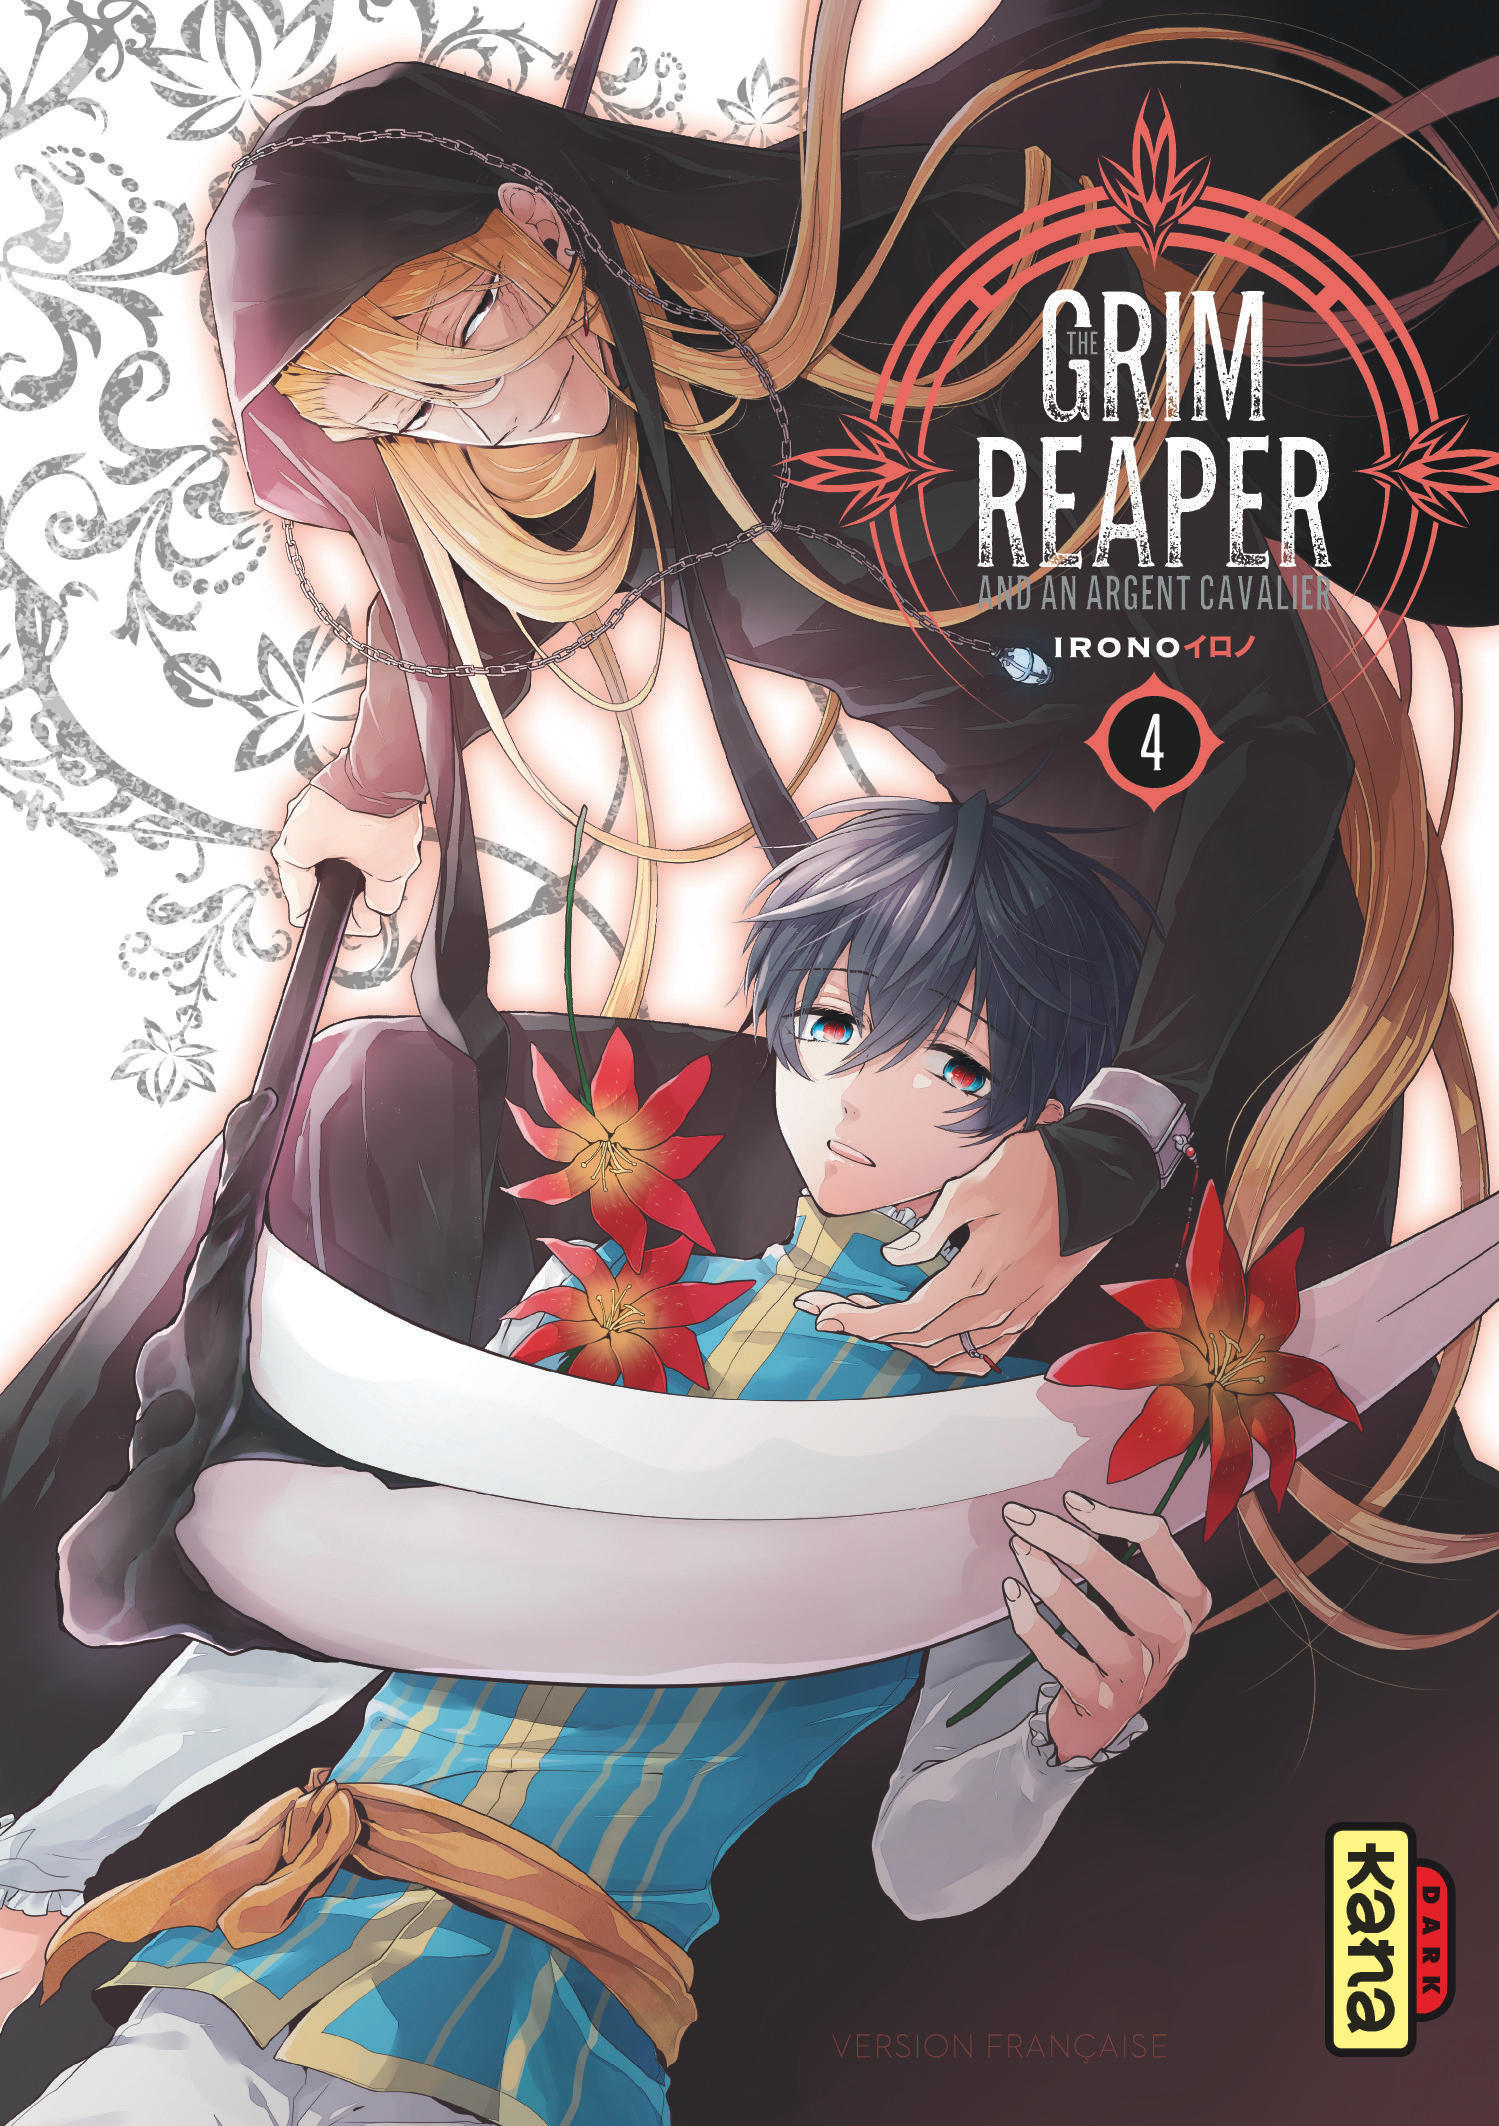 THE GRIM REAPER AND AN ARGENT CAVALIER, TOME 4